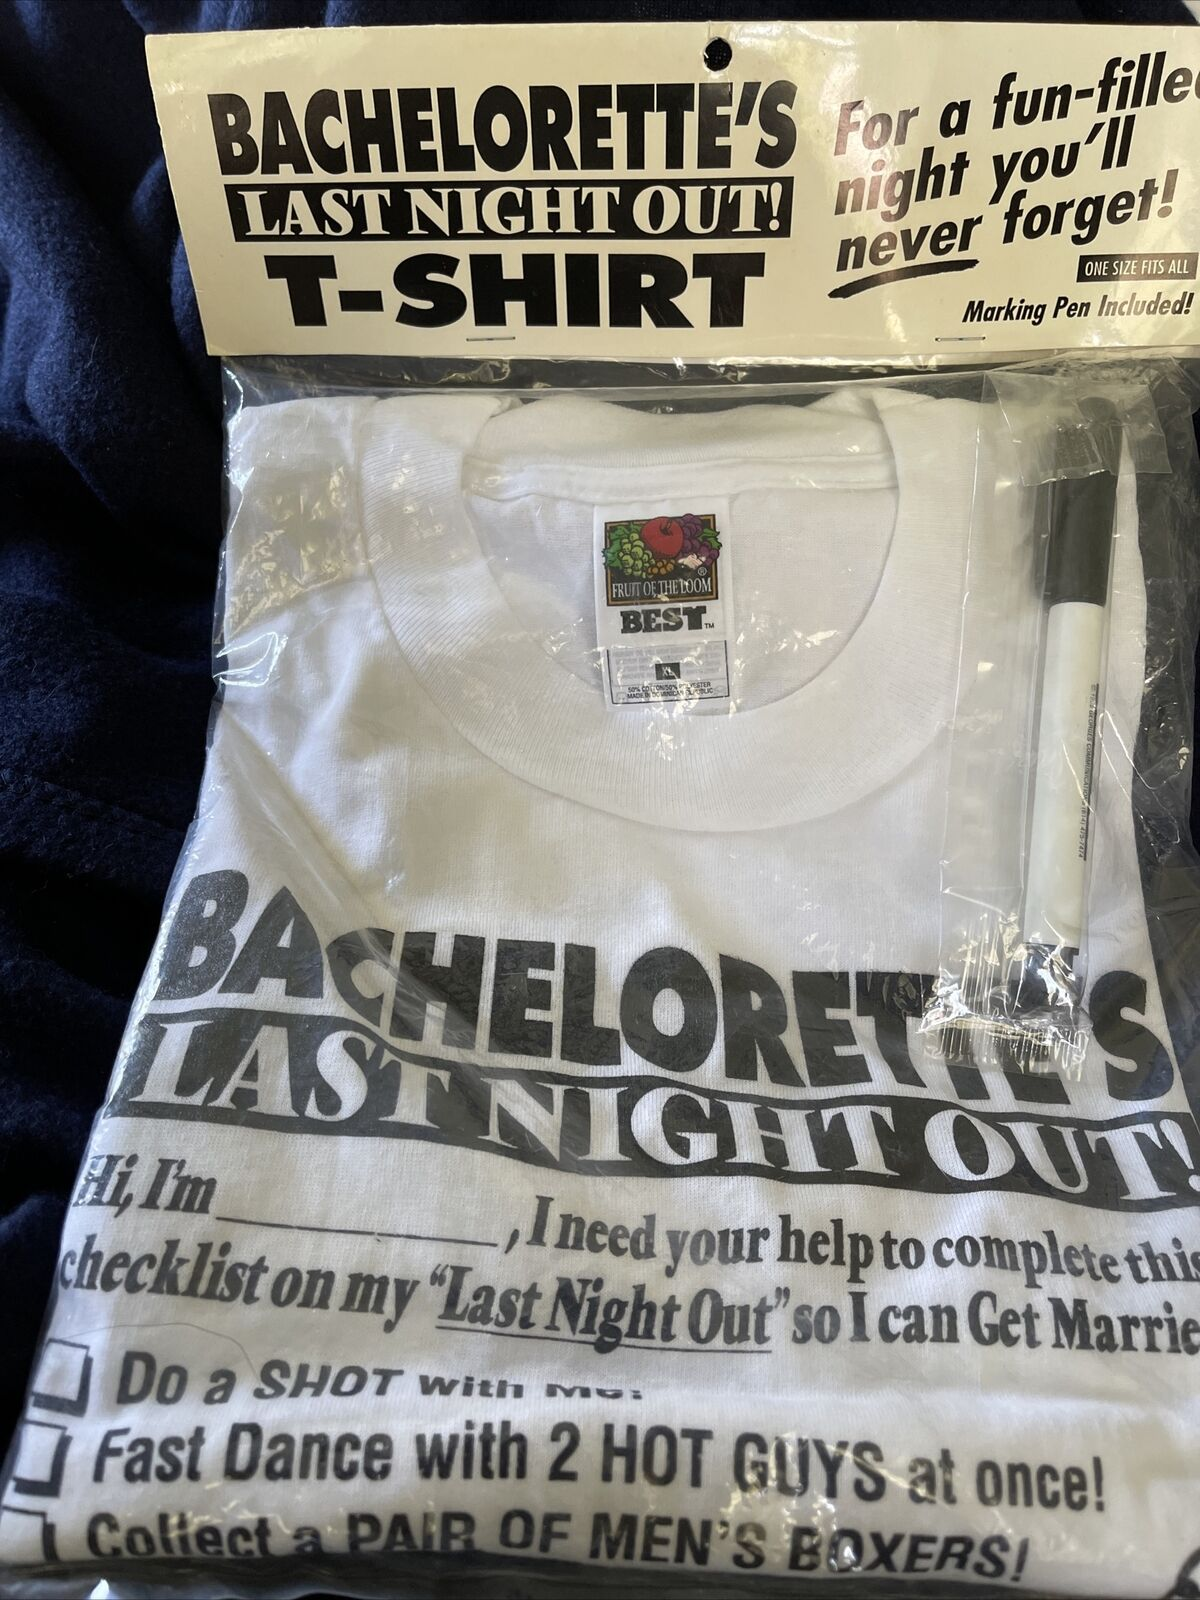 Wedding-Bachelorette's Last Night Out T Shirt with Marking Pen Vintage 1998 New